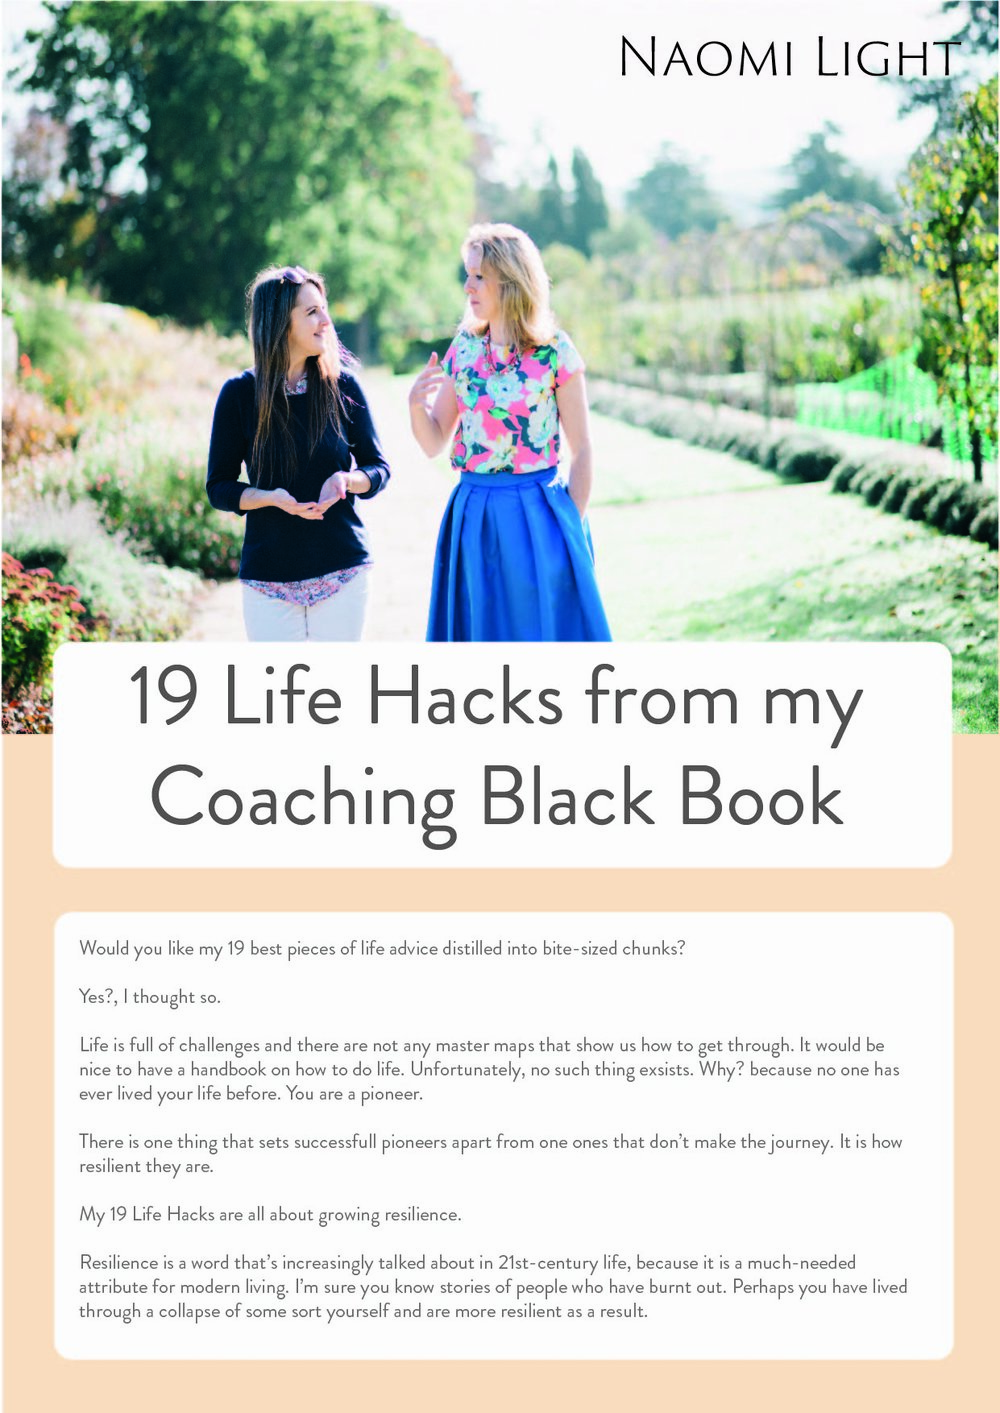 19 Life Hacks from my coaching black book-01.jpg